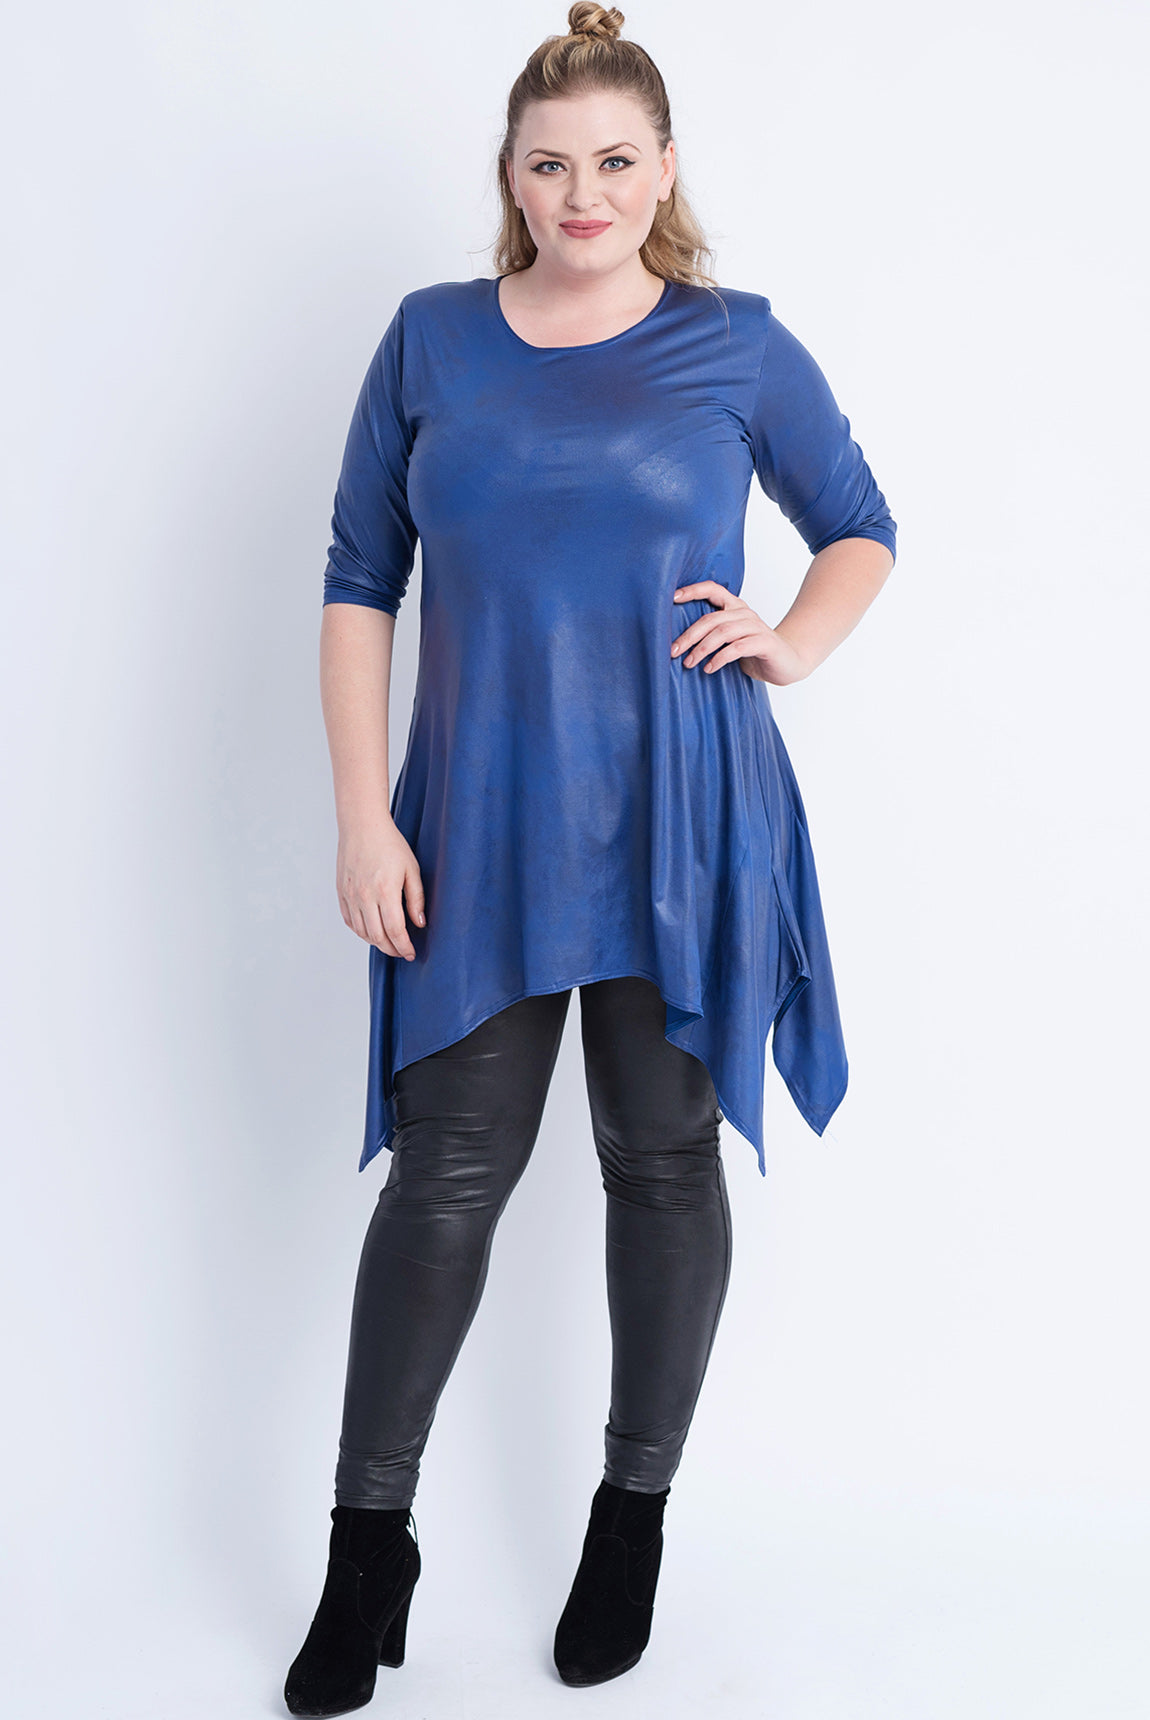 Sharkbite Tunic - Leather Look Cobalt